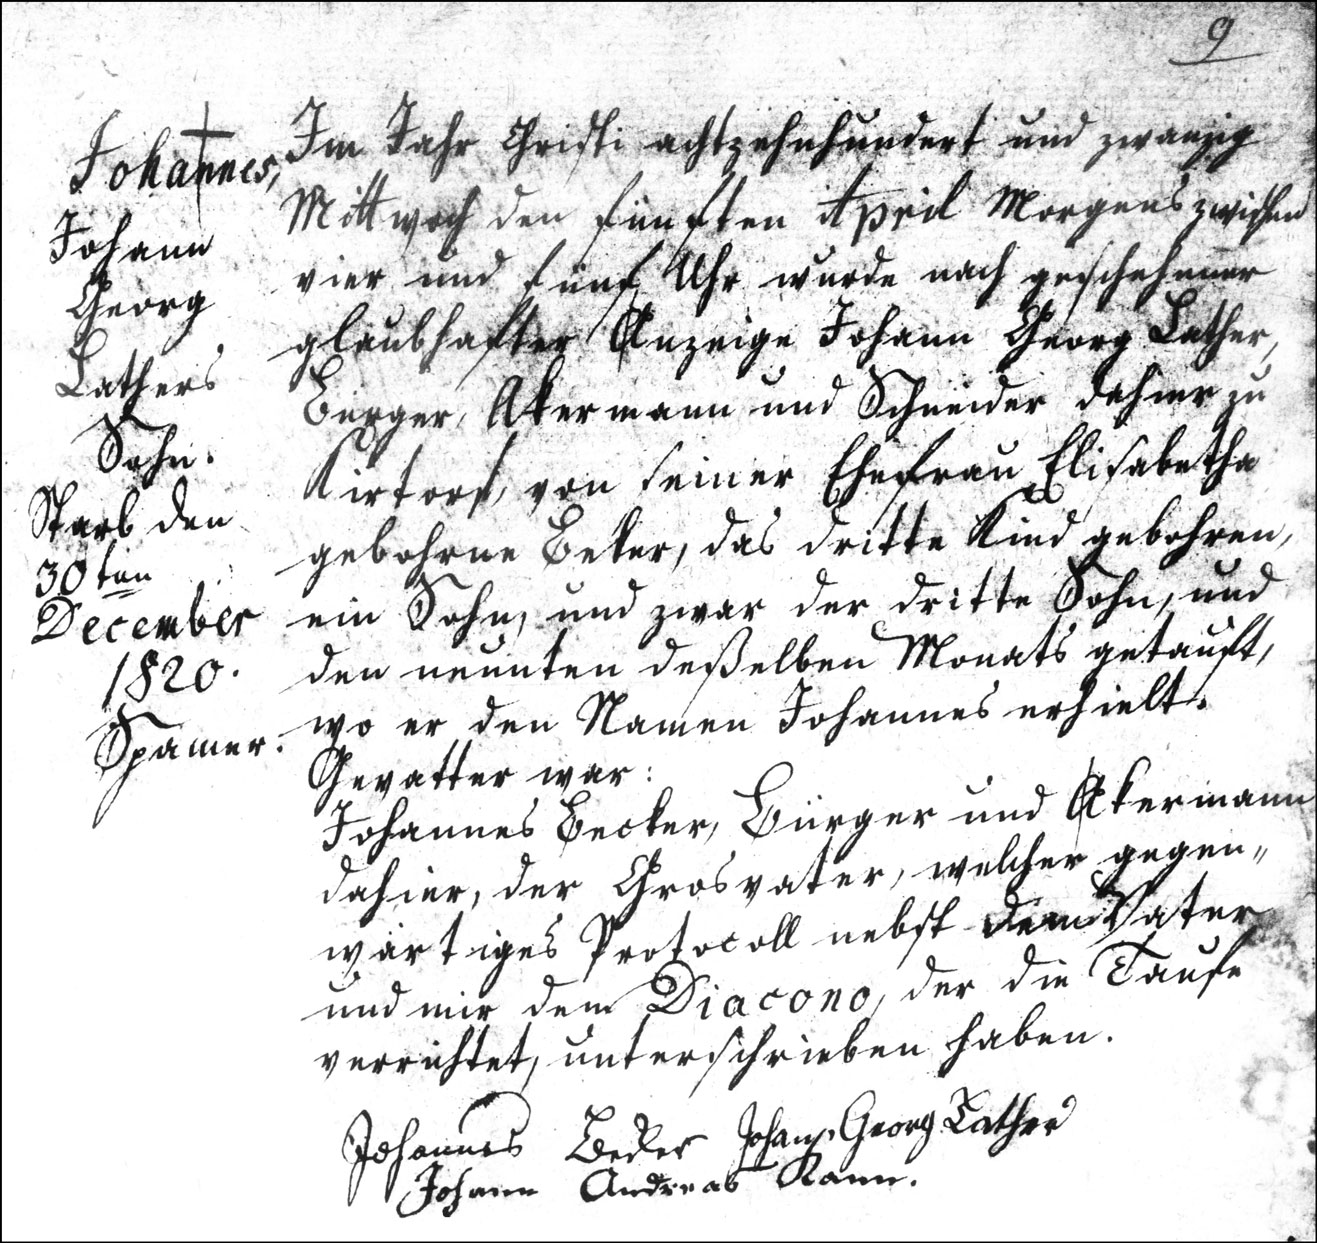 The Birth and Baptismal Record of Johannes Lather - 1820